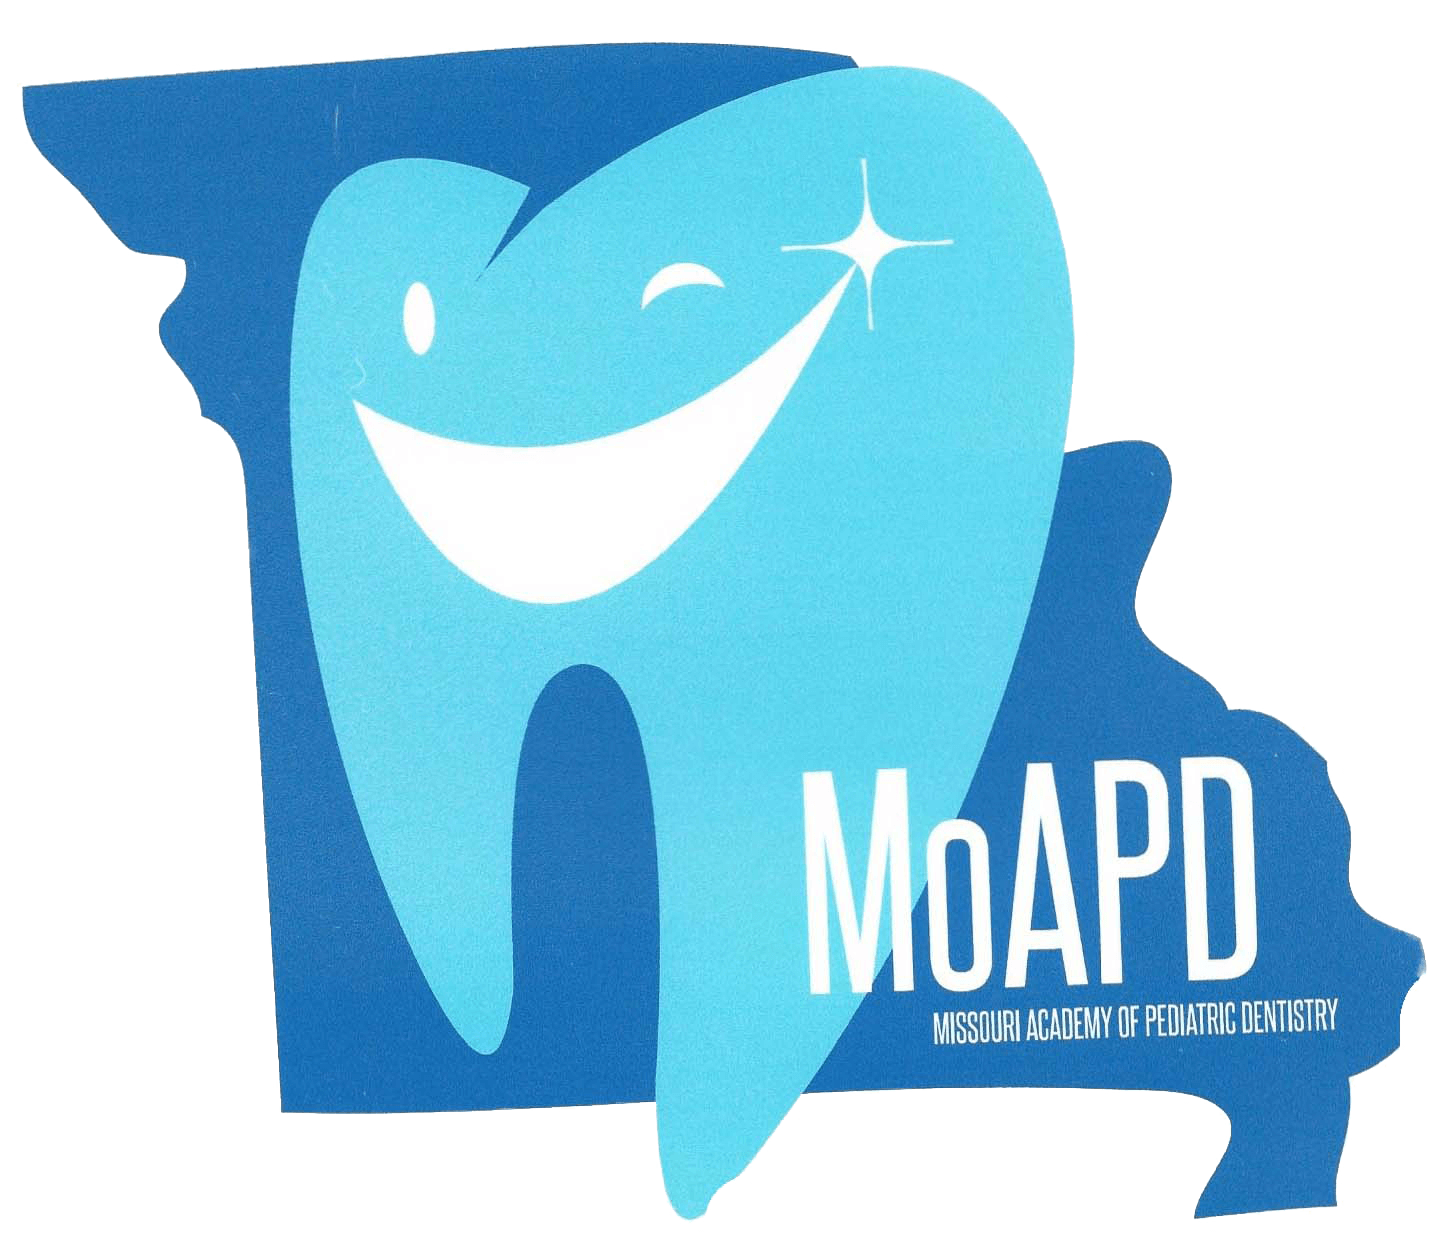 Missouri Academy of Pediatric Dentistry Logo